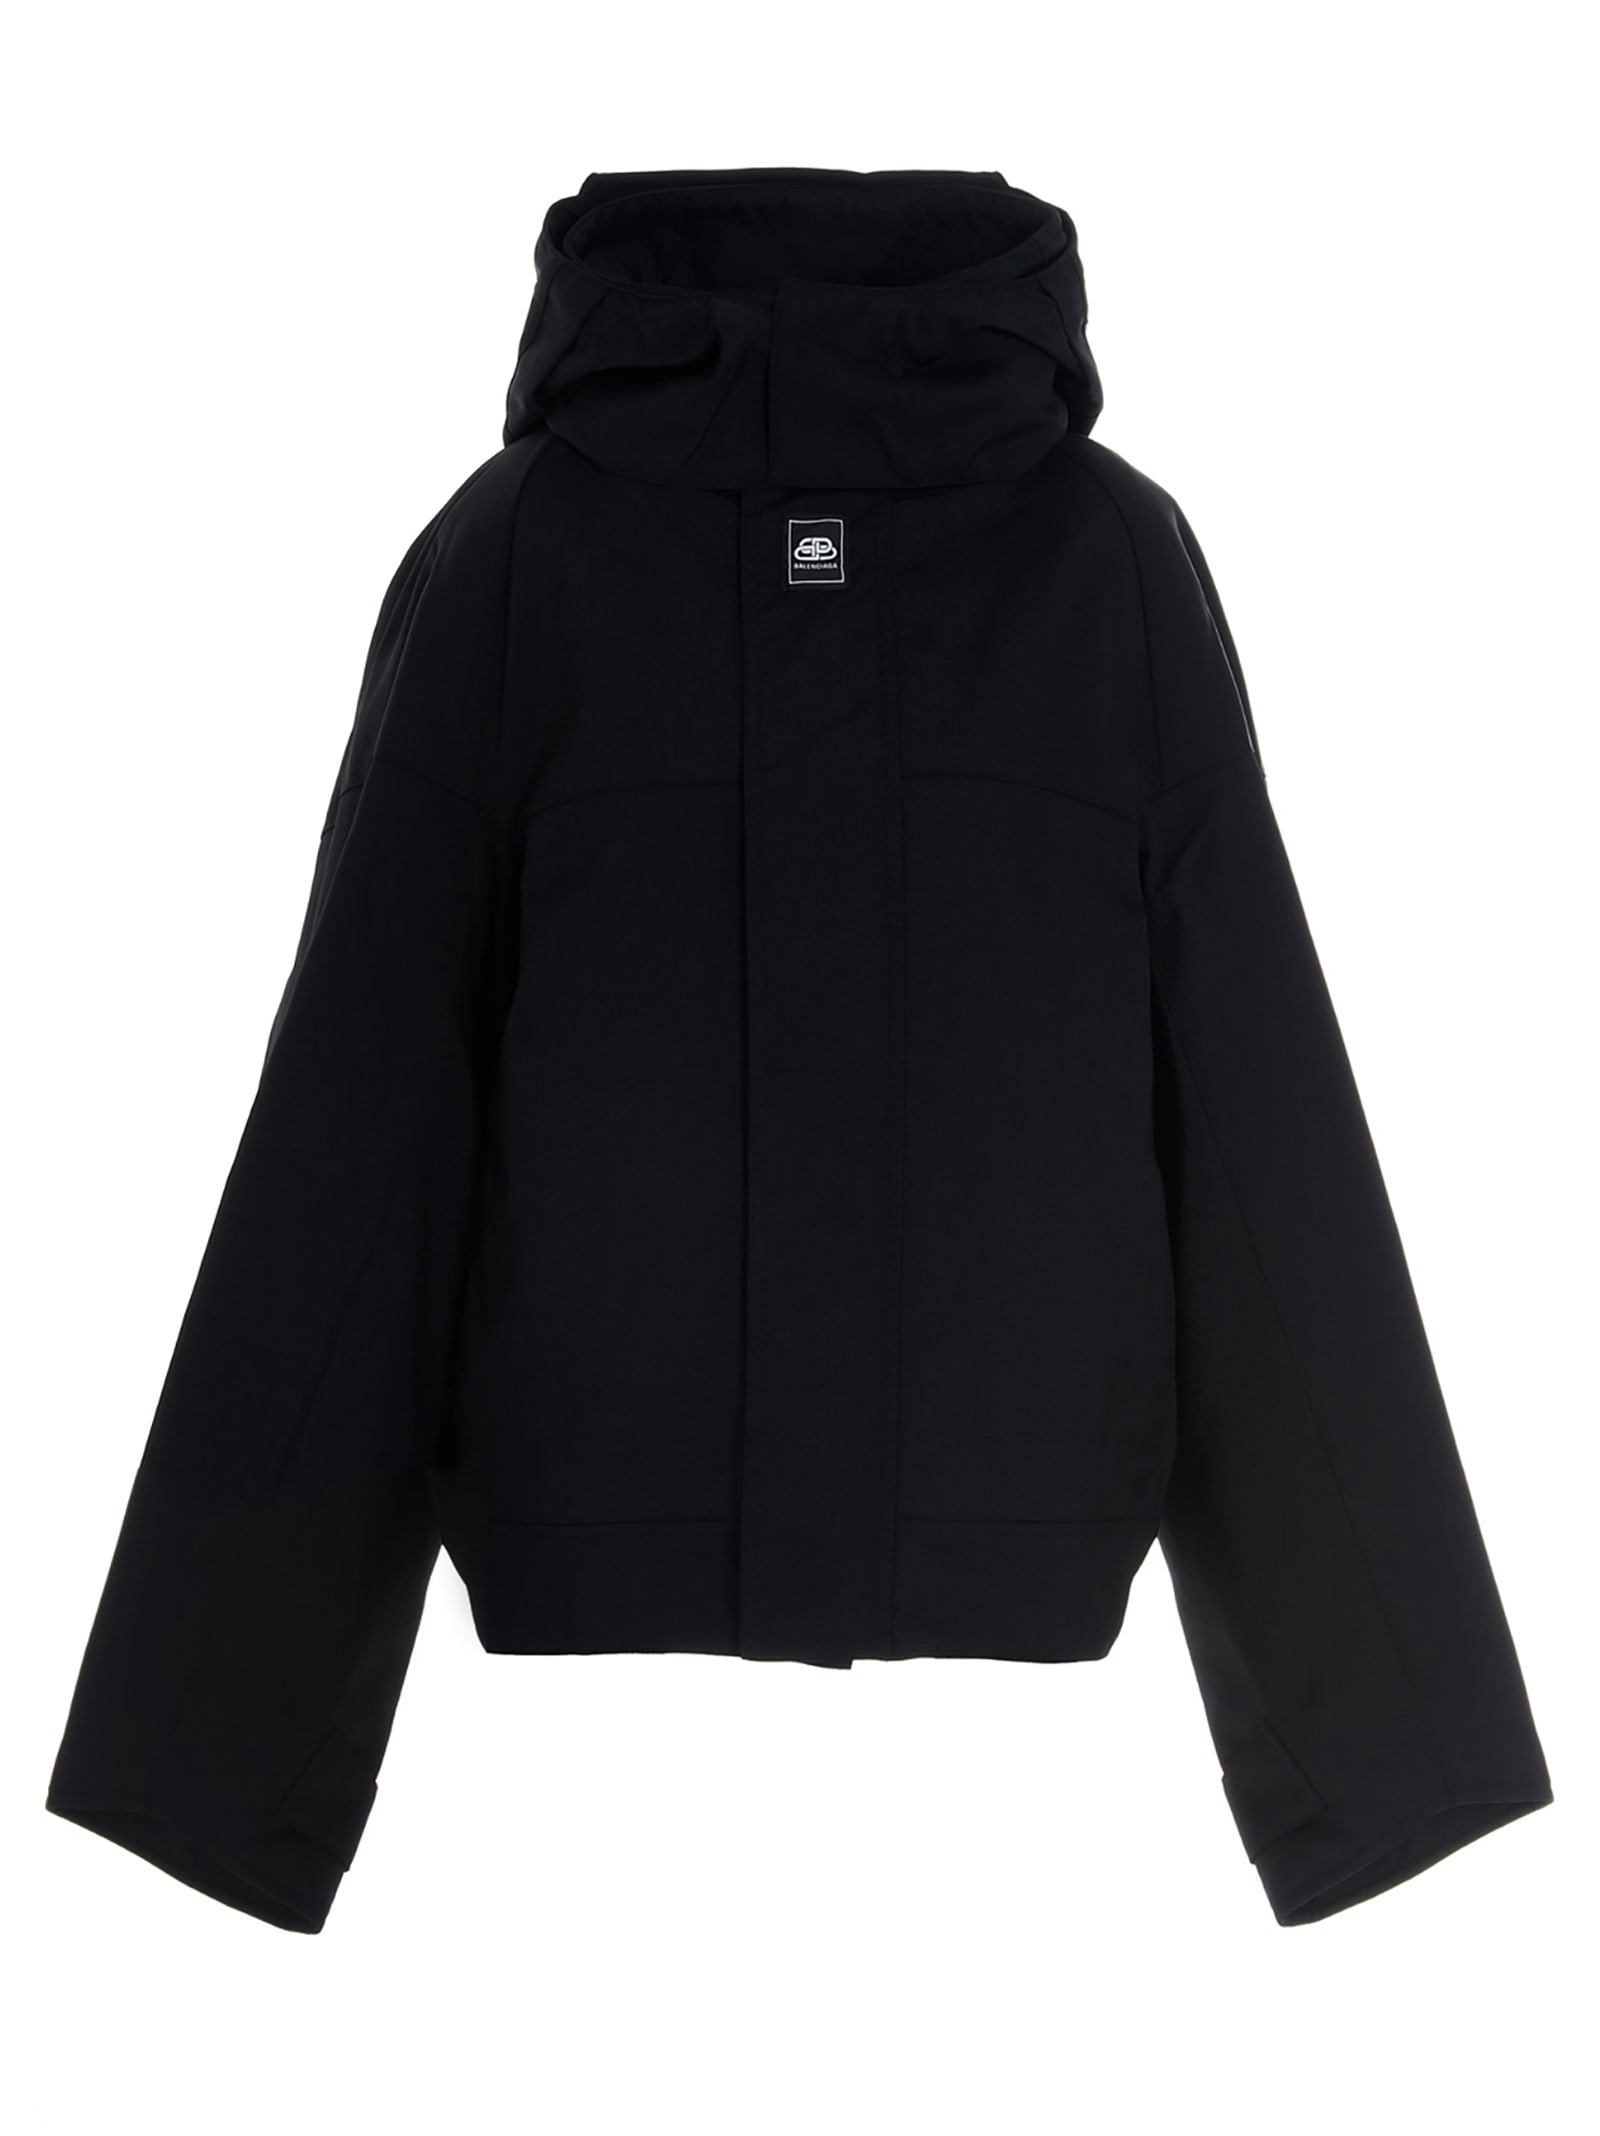 Balenciaga upside-down Jacket